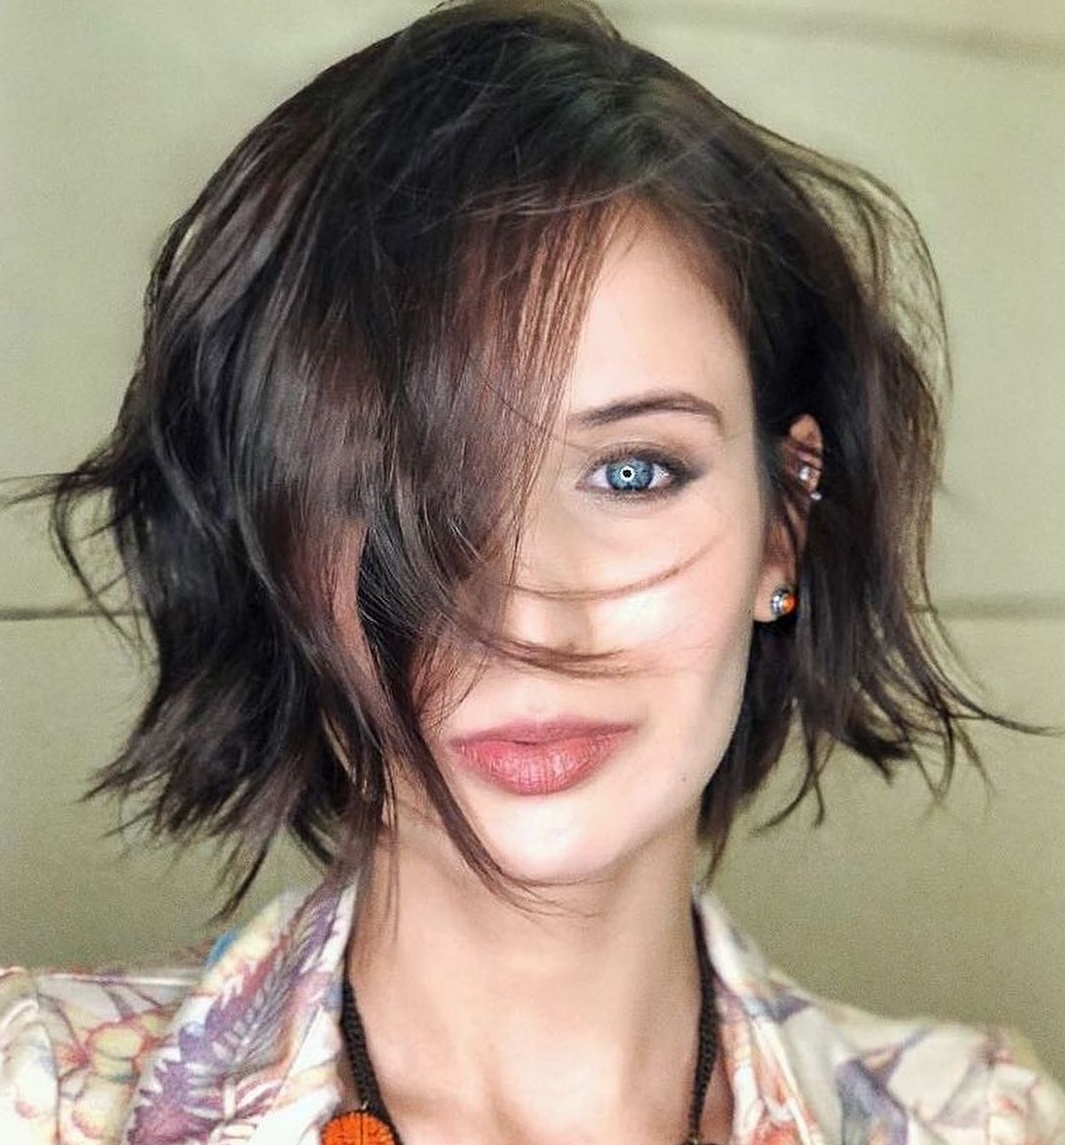 Messy Bob Hairstyle for an Oval Face